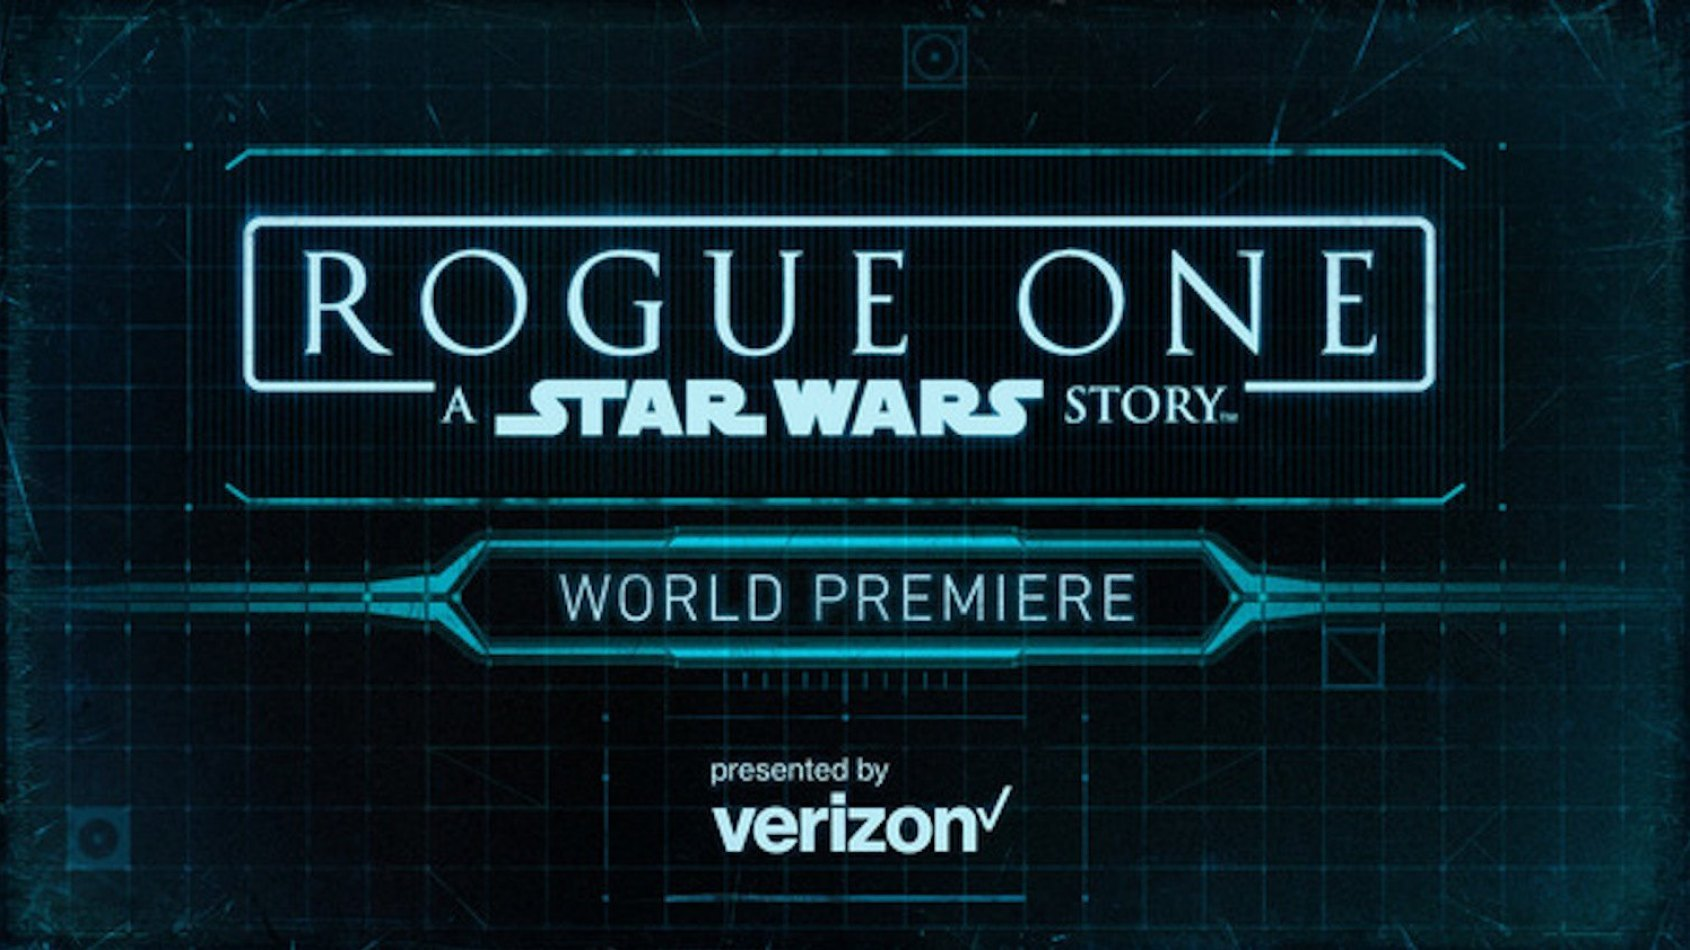 La World Premiere de Rogue One c'est ce soir!